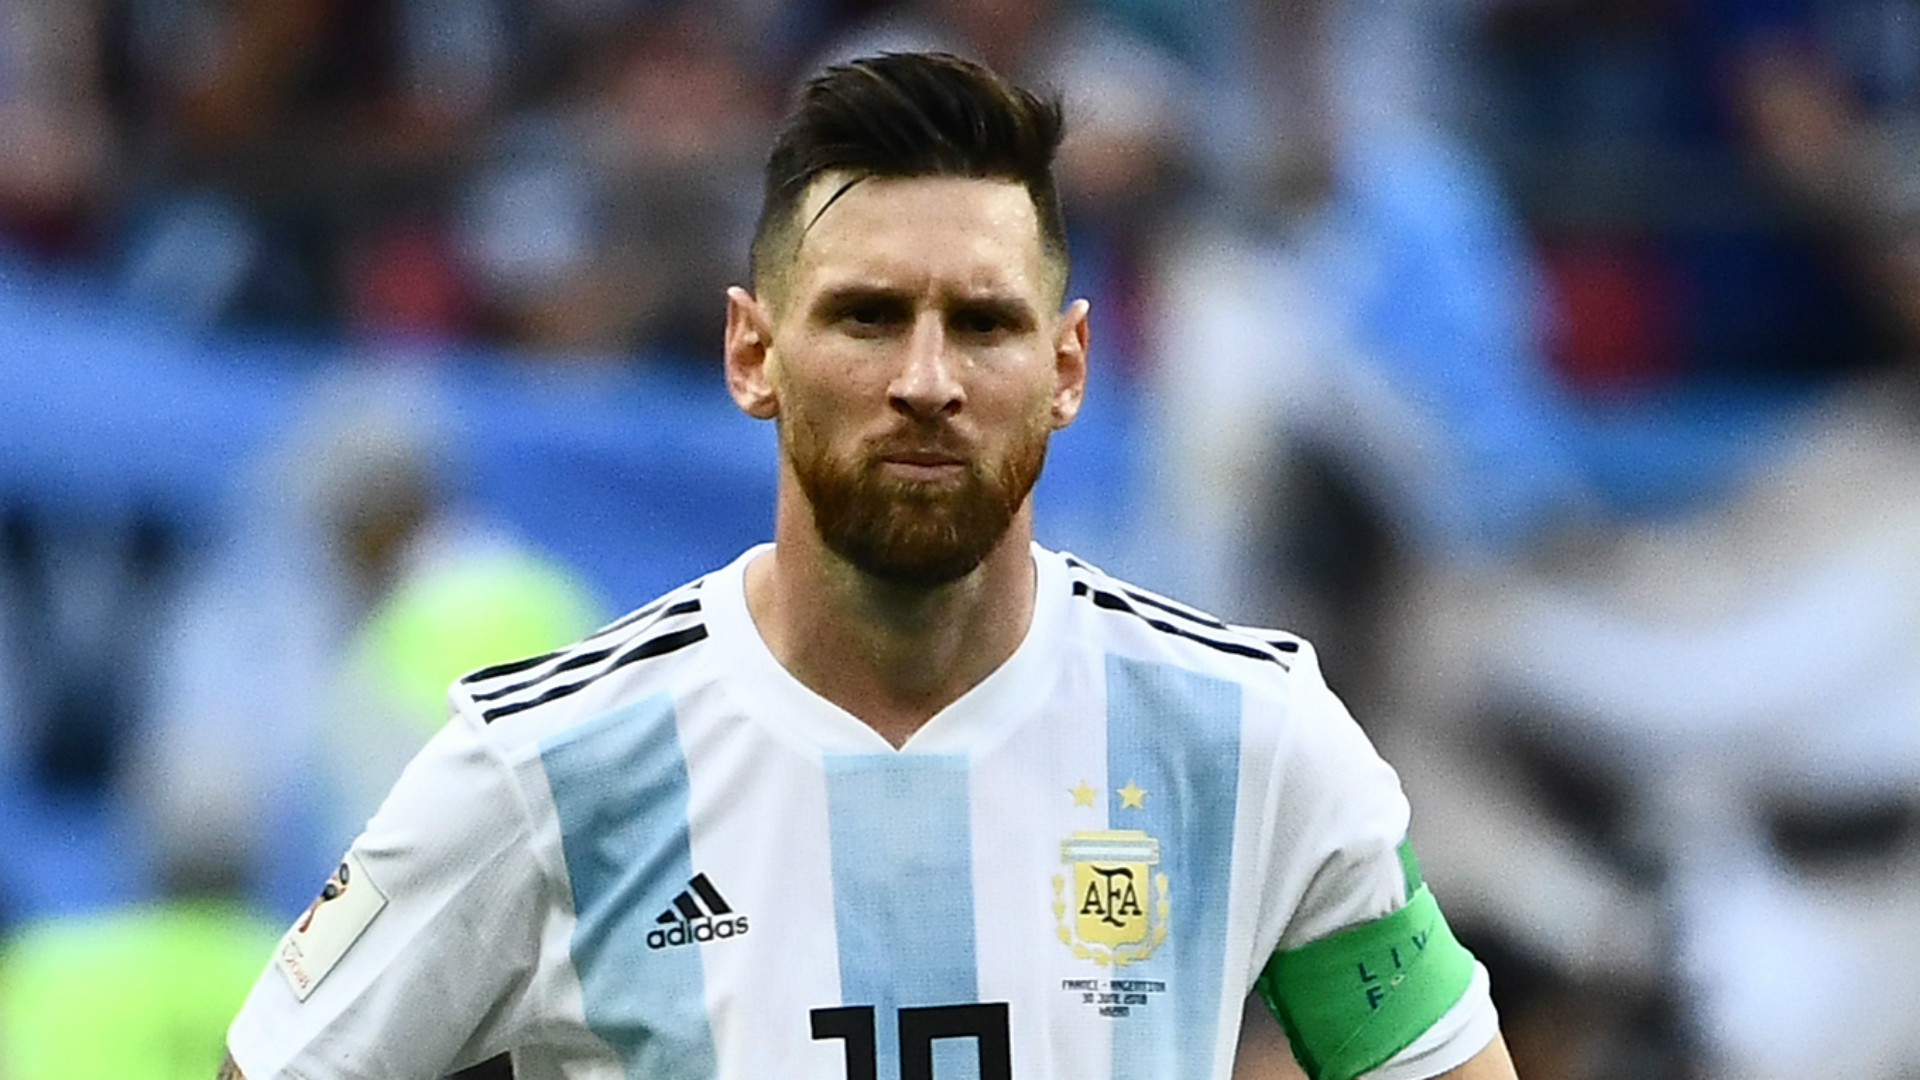 Diego Maradona aims criticism at Argentine compatriot Lionel Messi